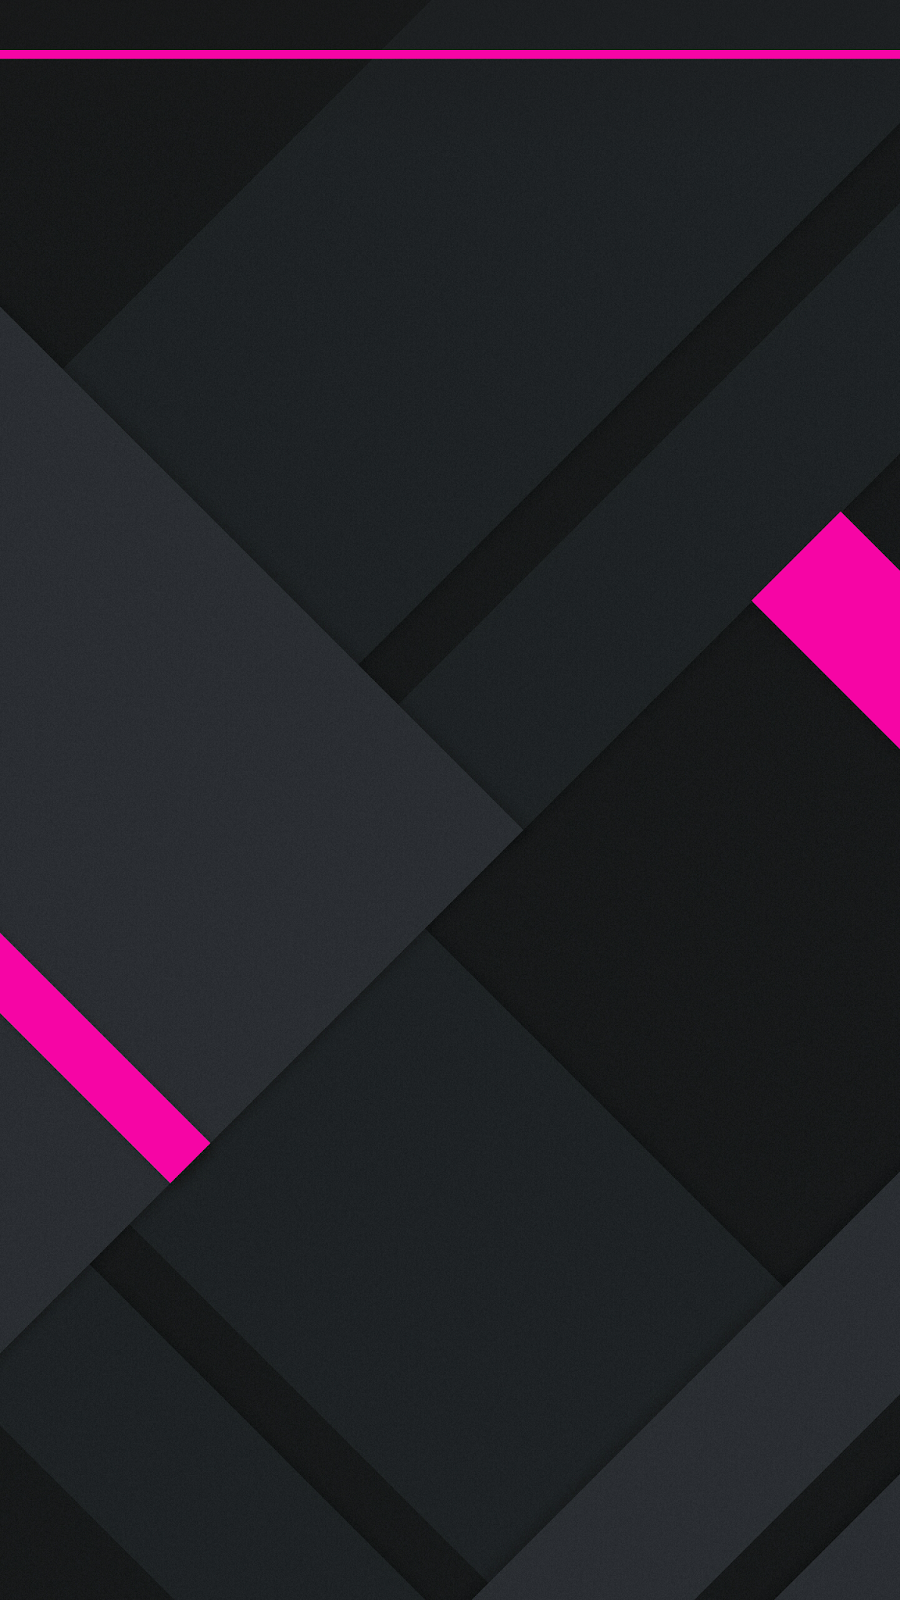 900x1600 Black and Pink Pattern Wallpaper | *Abstract and Geometric ...